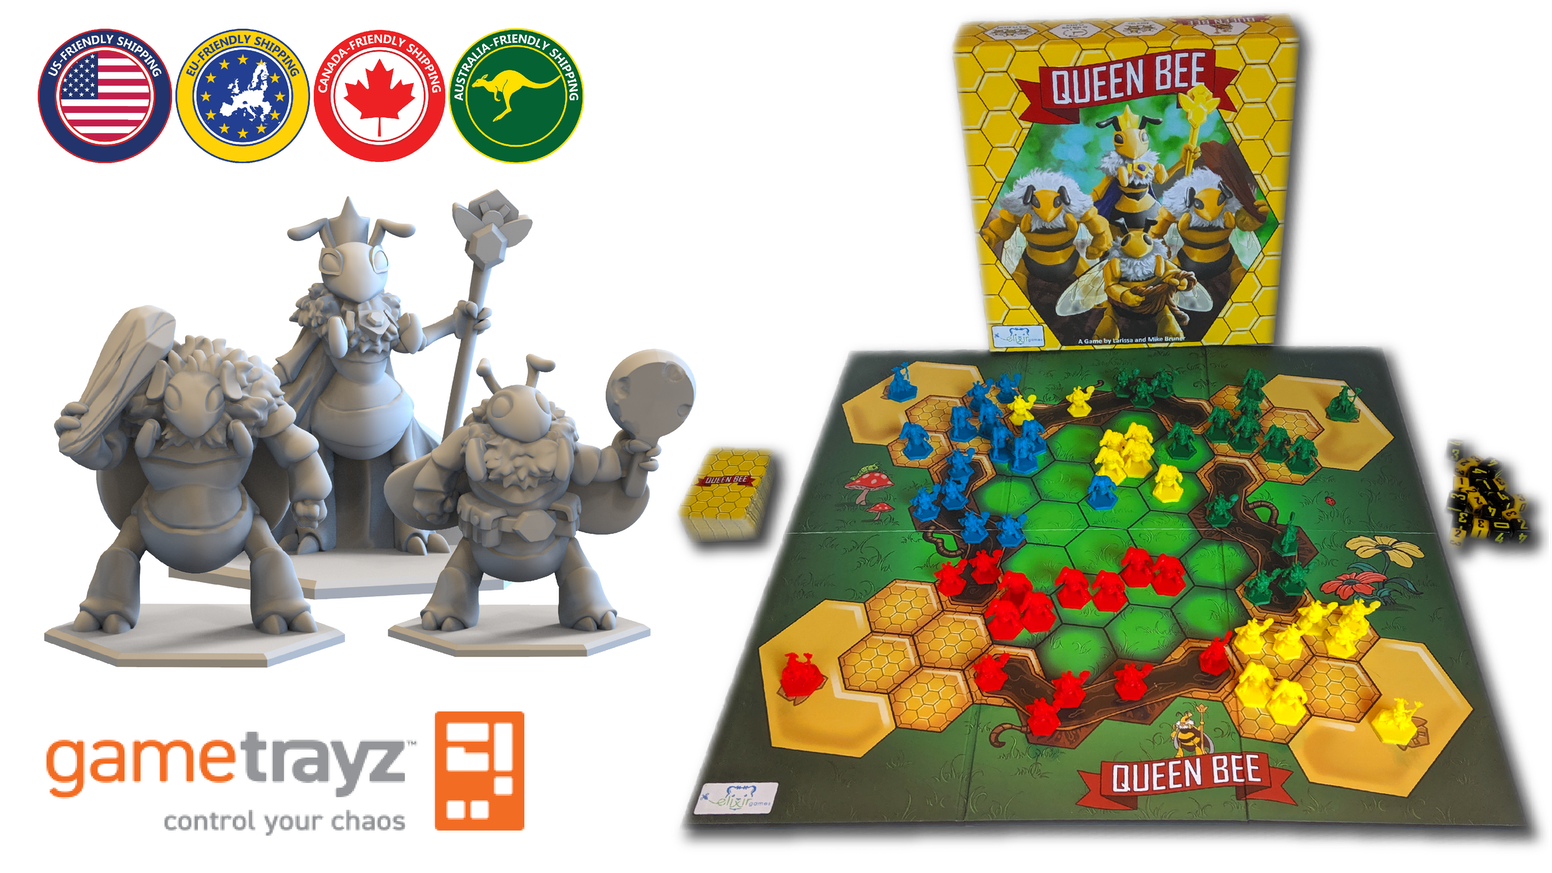 Use strategy to beat your opponents and become the last remaining Queen Bee. A minis game with a unique spin on player elimination.